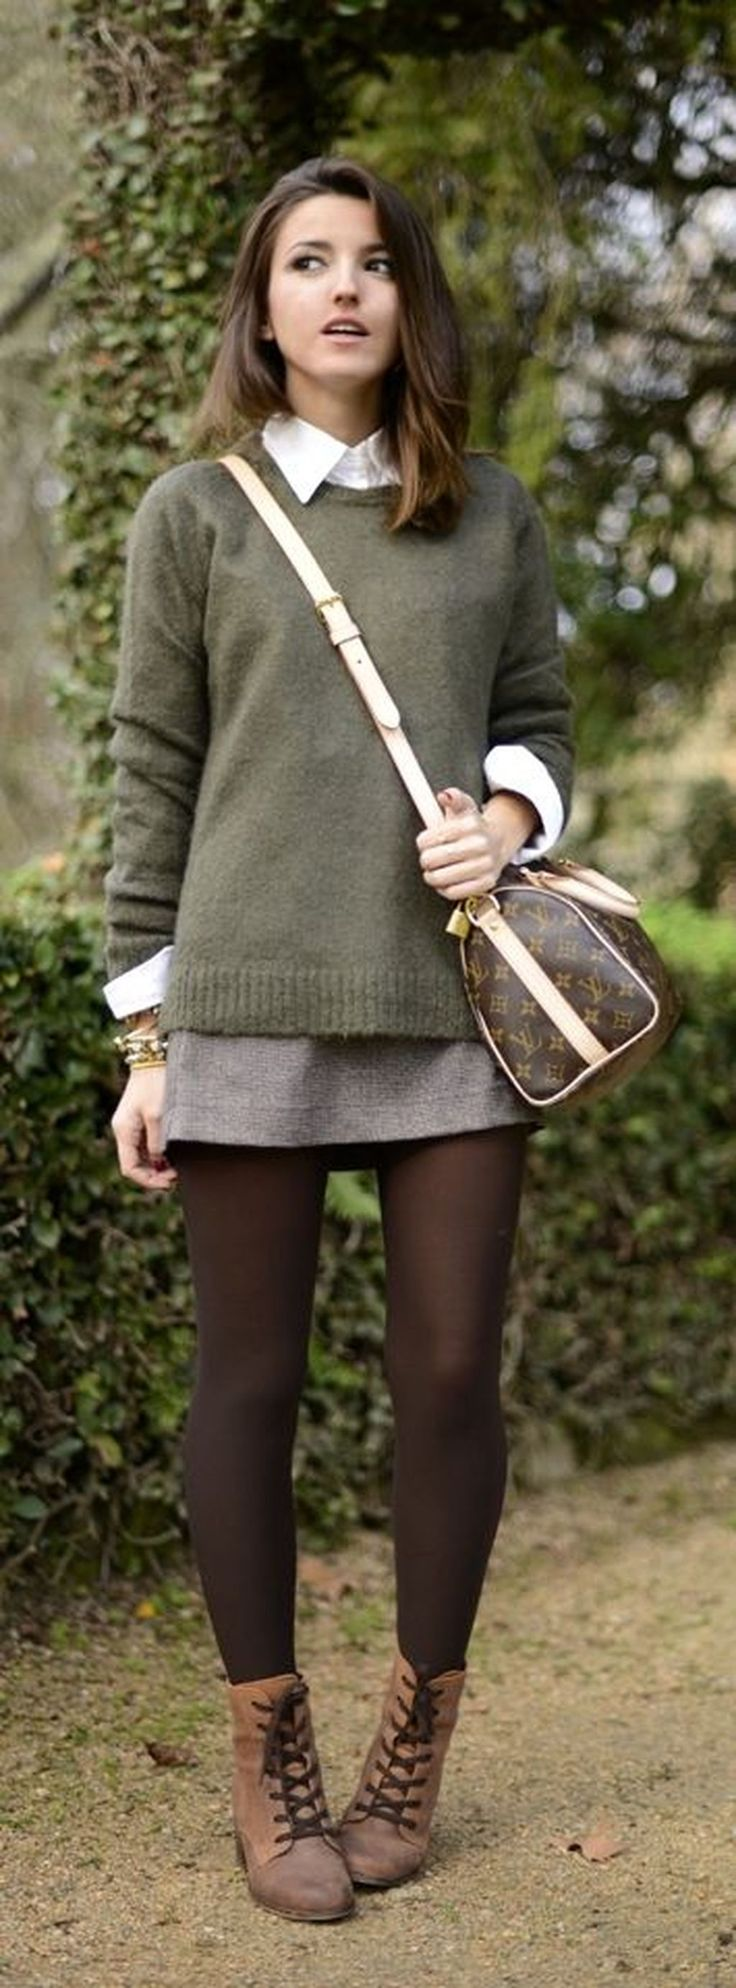 Preppy-Fall-Outfits-To-Inspire-You34.jpg 1,024×2,766 ...